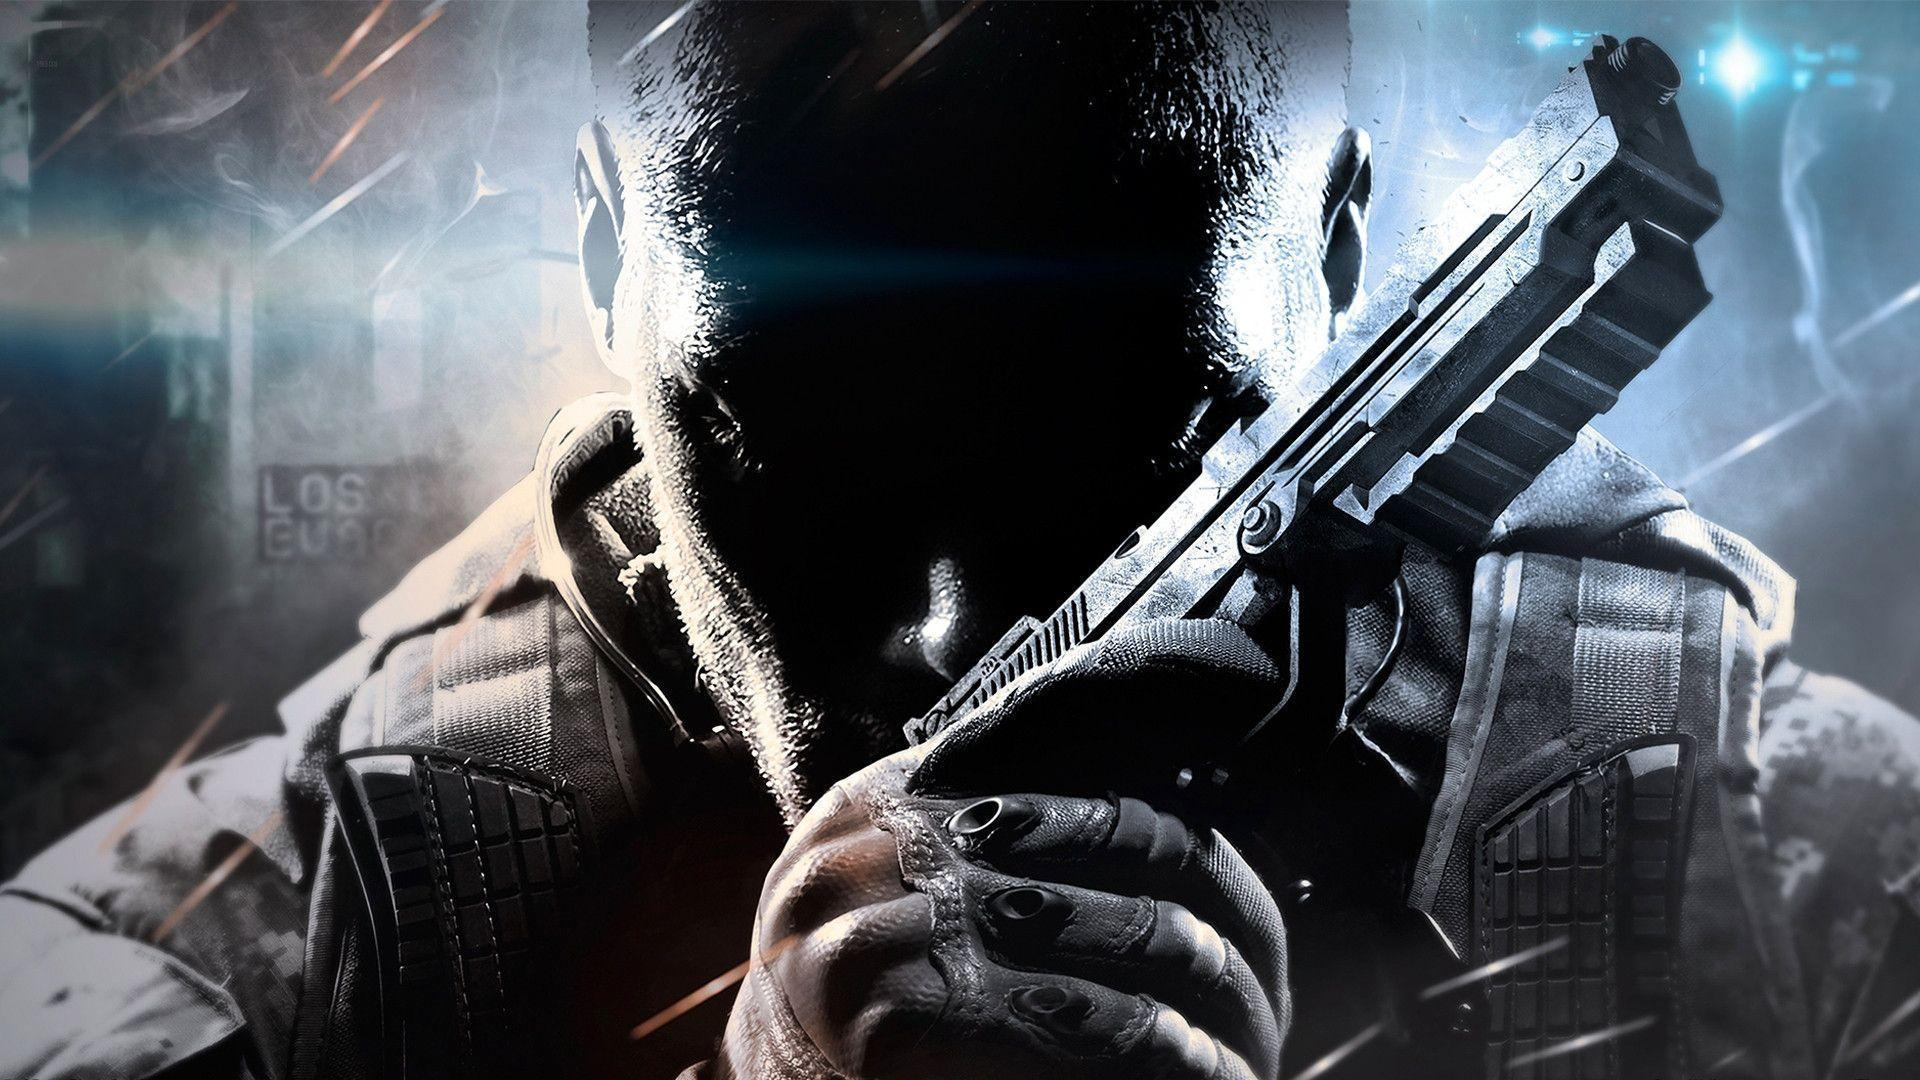 42 Call Of Duty: Black Ops II Wallpapers